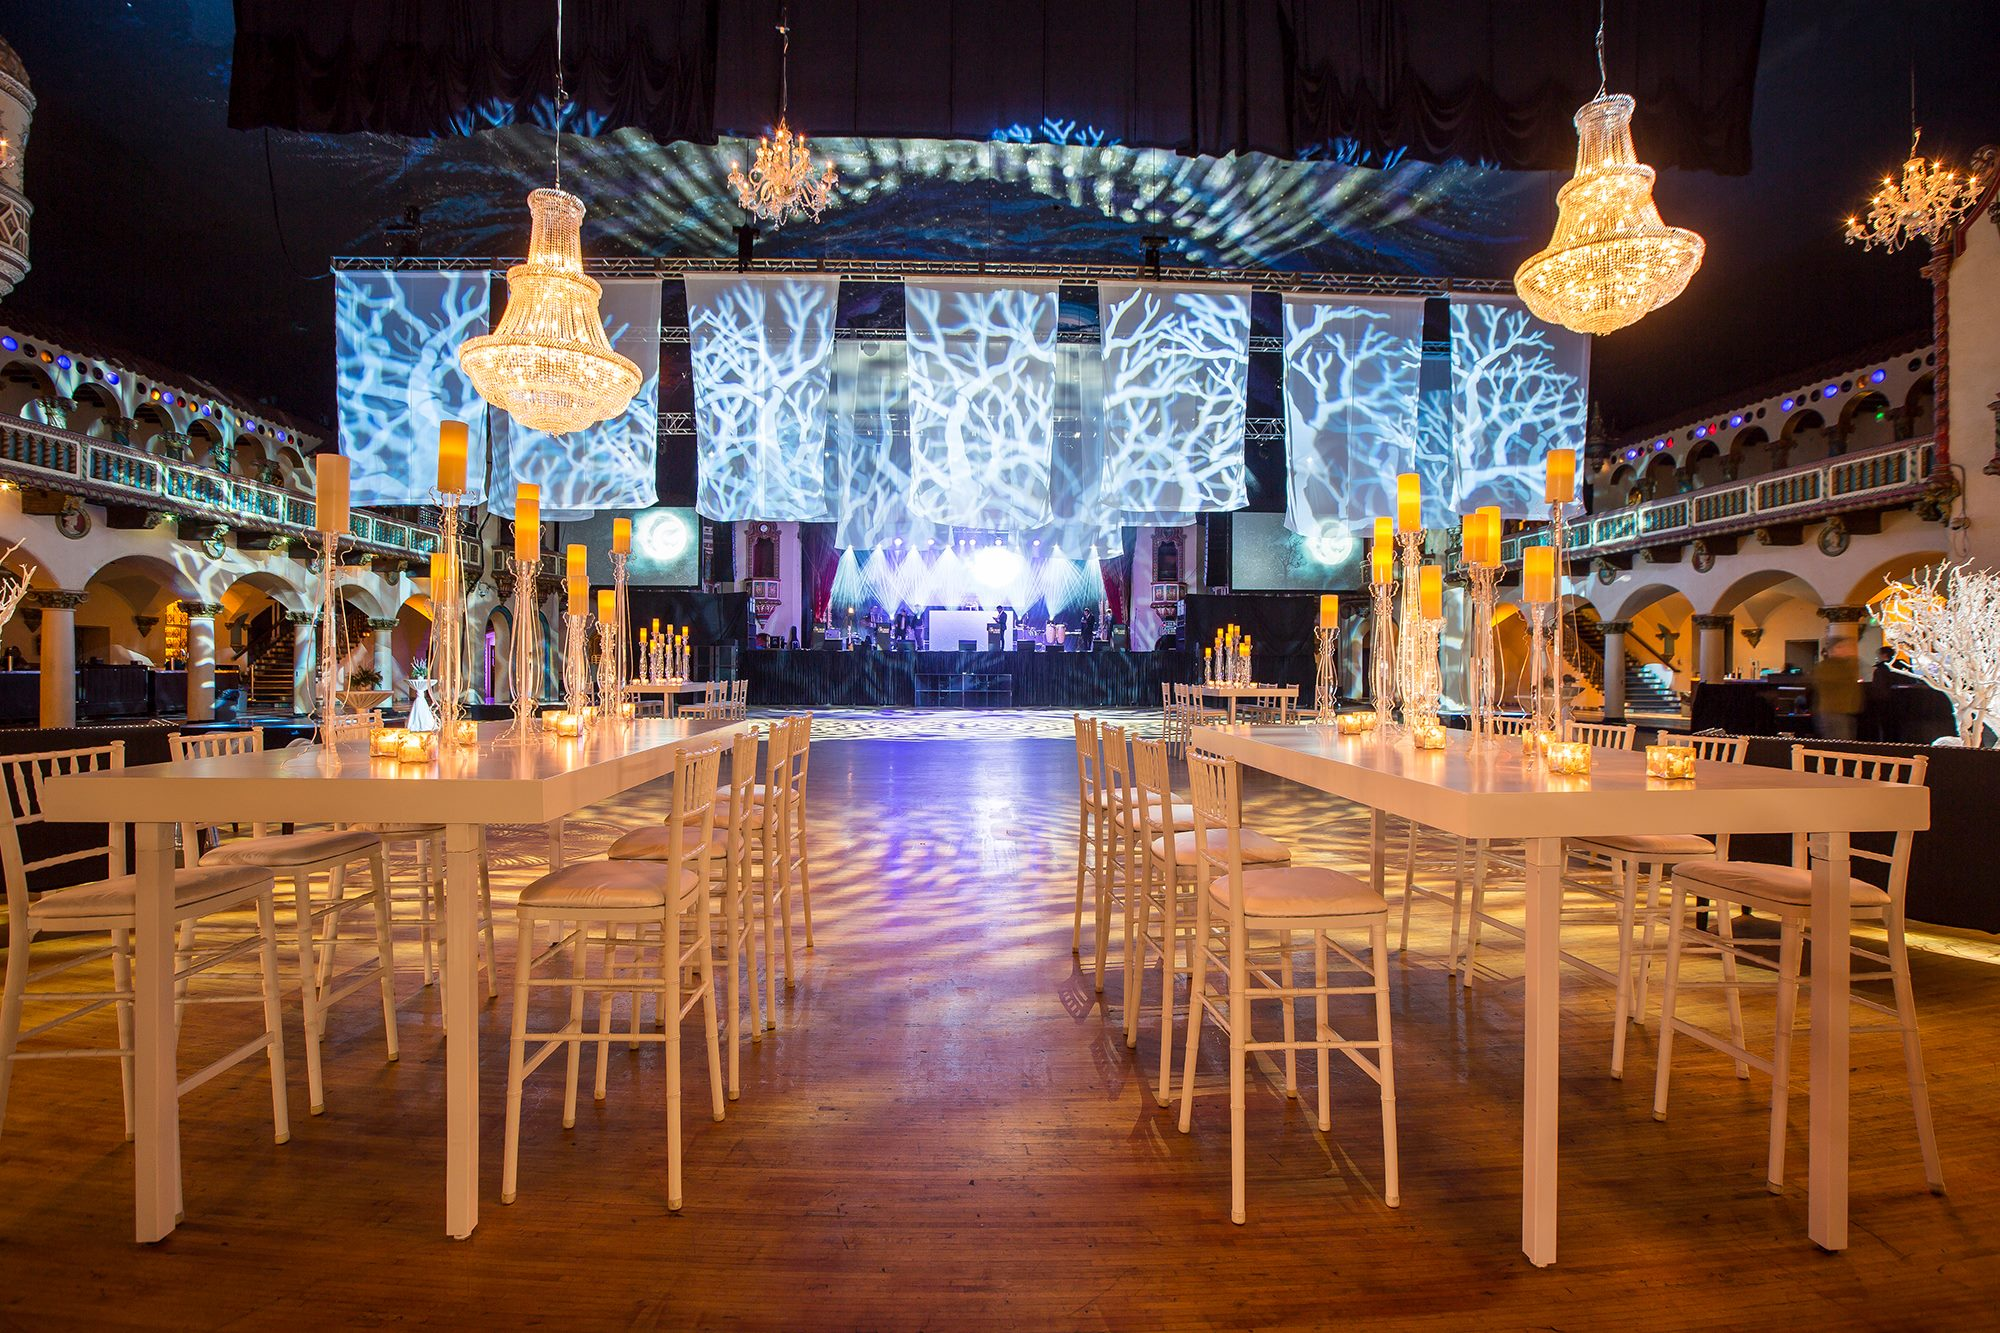 10 best places to get married in chicago for 10 best places to get married